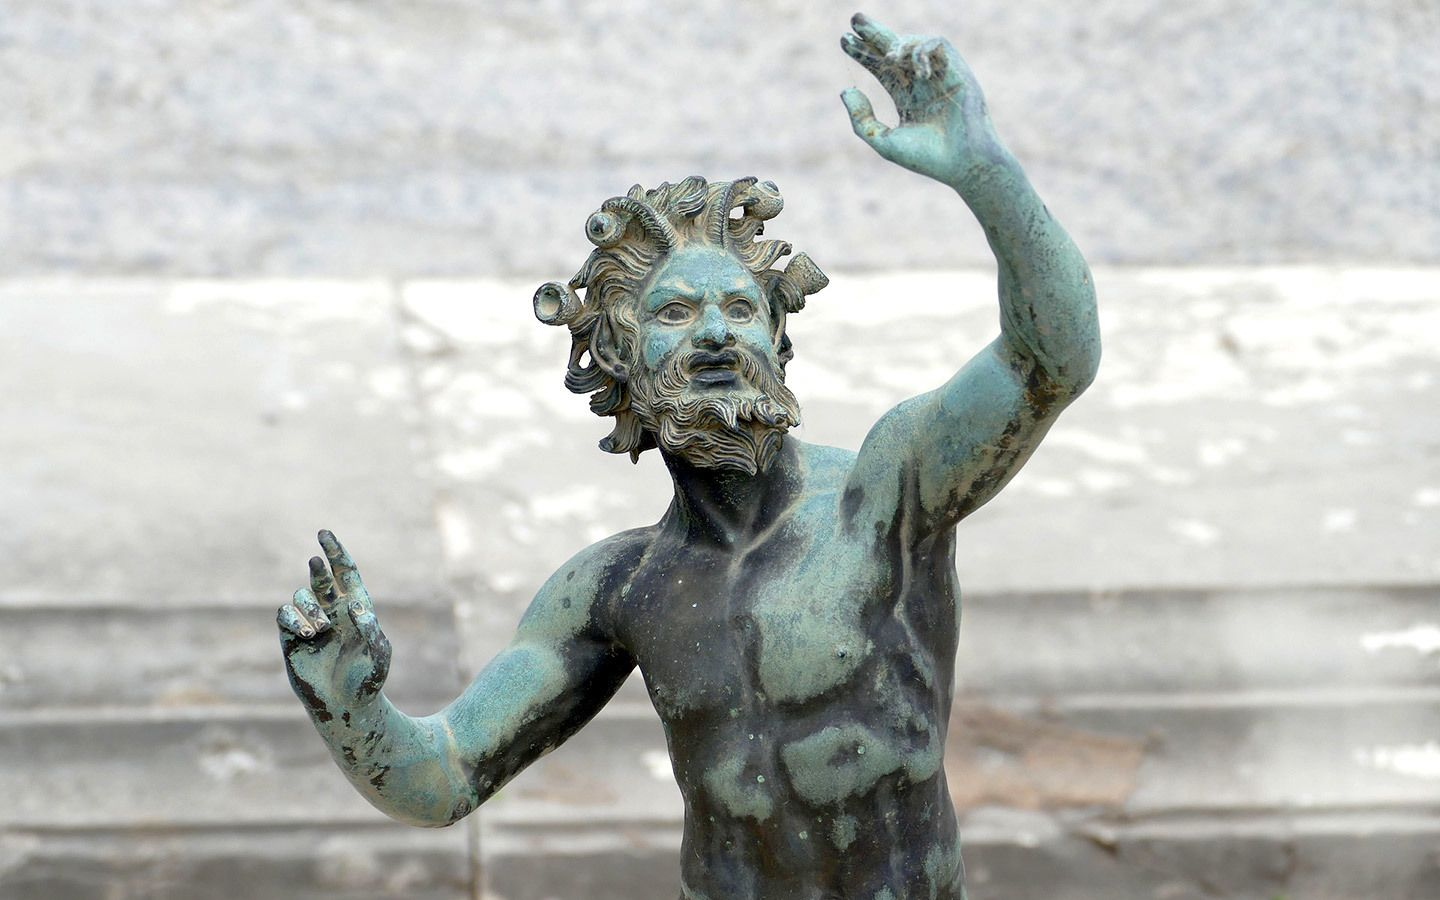 Statue at the House of the Faun in Pompeii